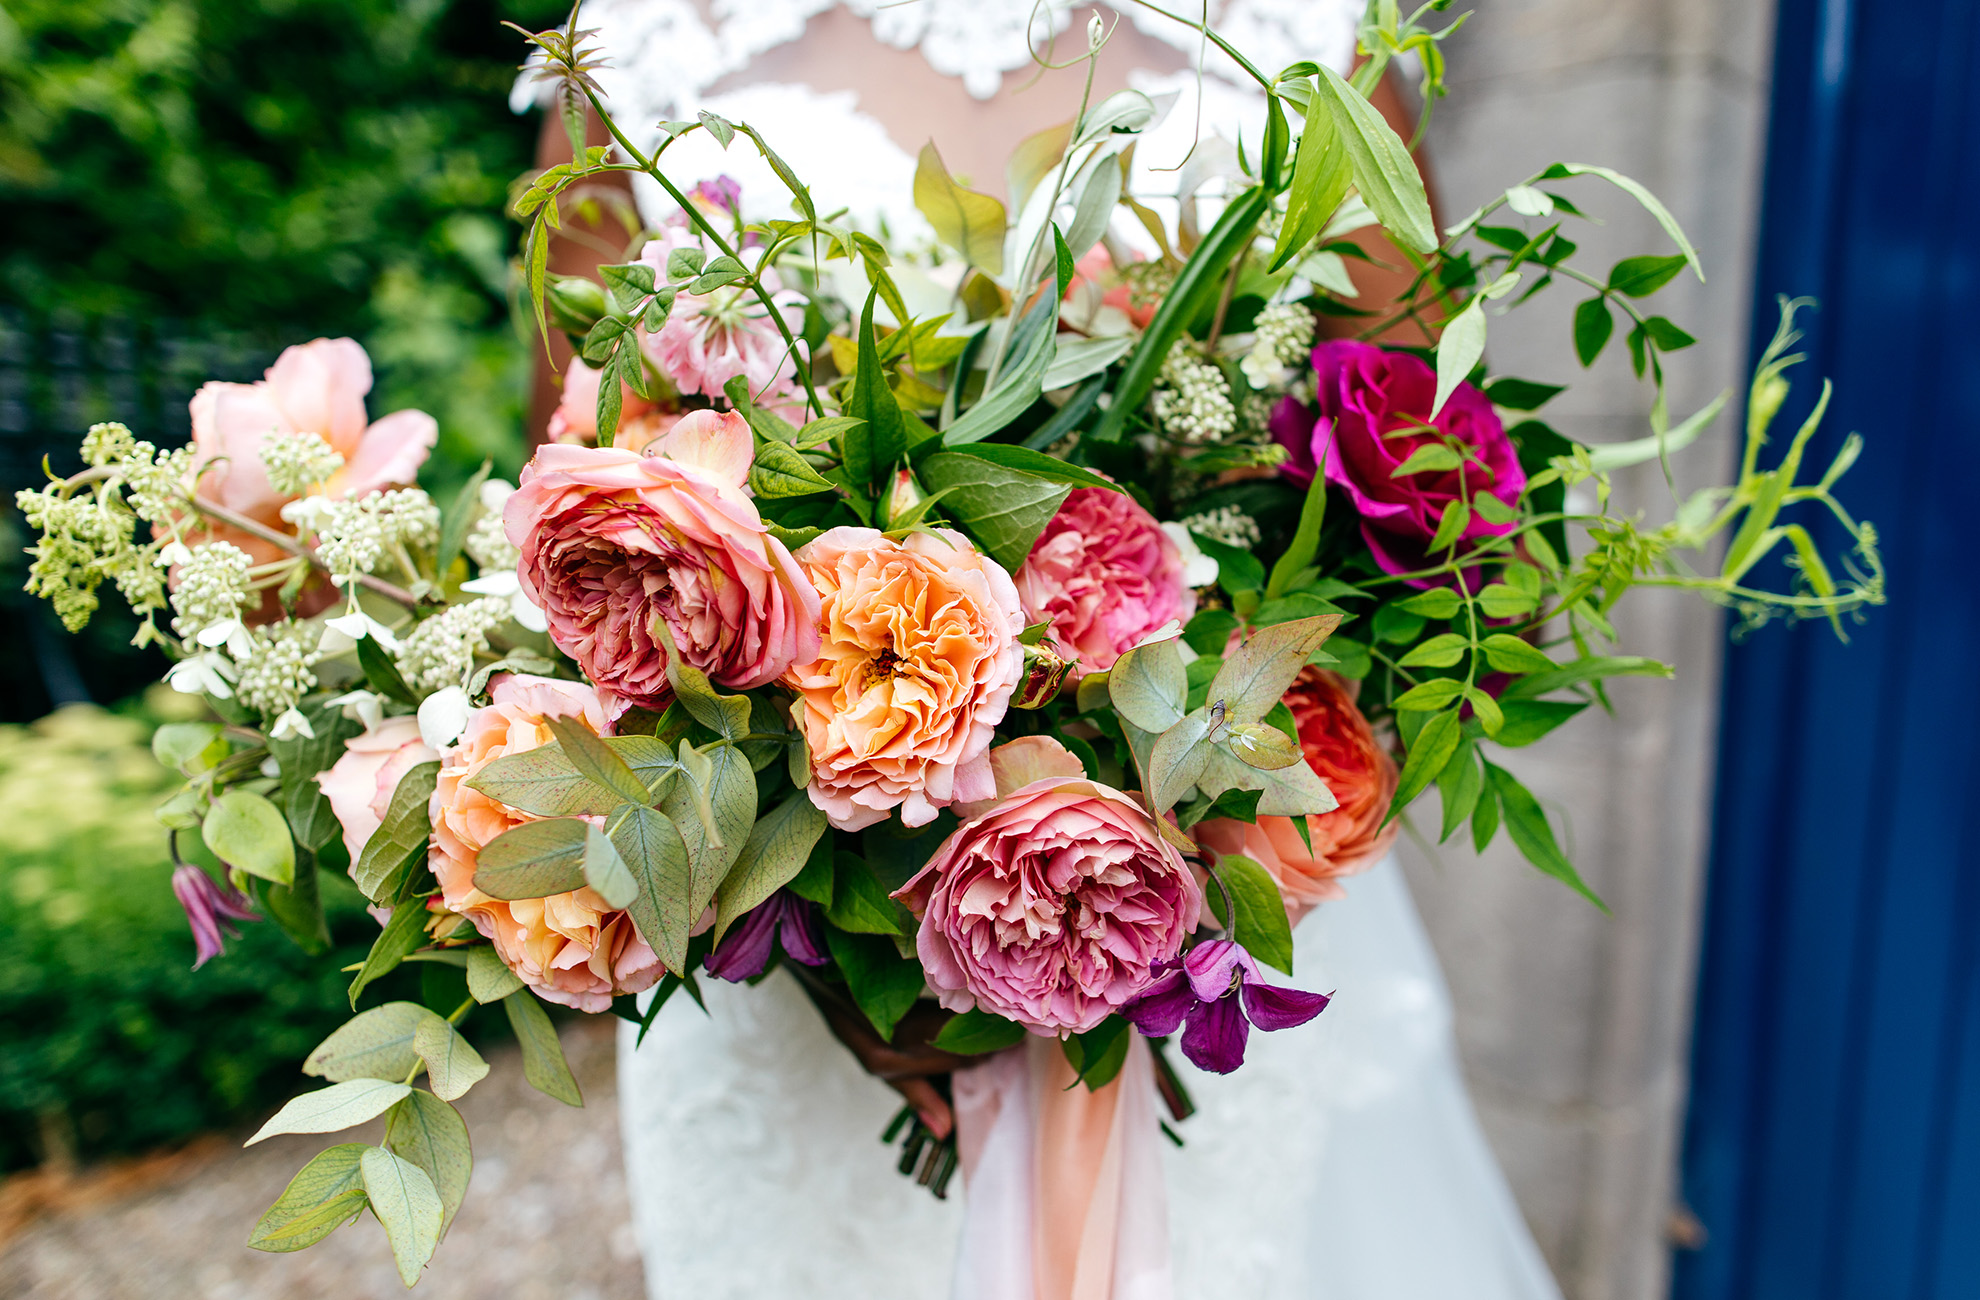 Add a pop of colour to your summer wedding at Combermere Abbey with a bright wedding bouquet